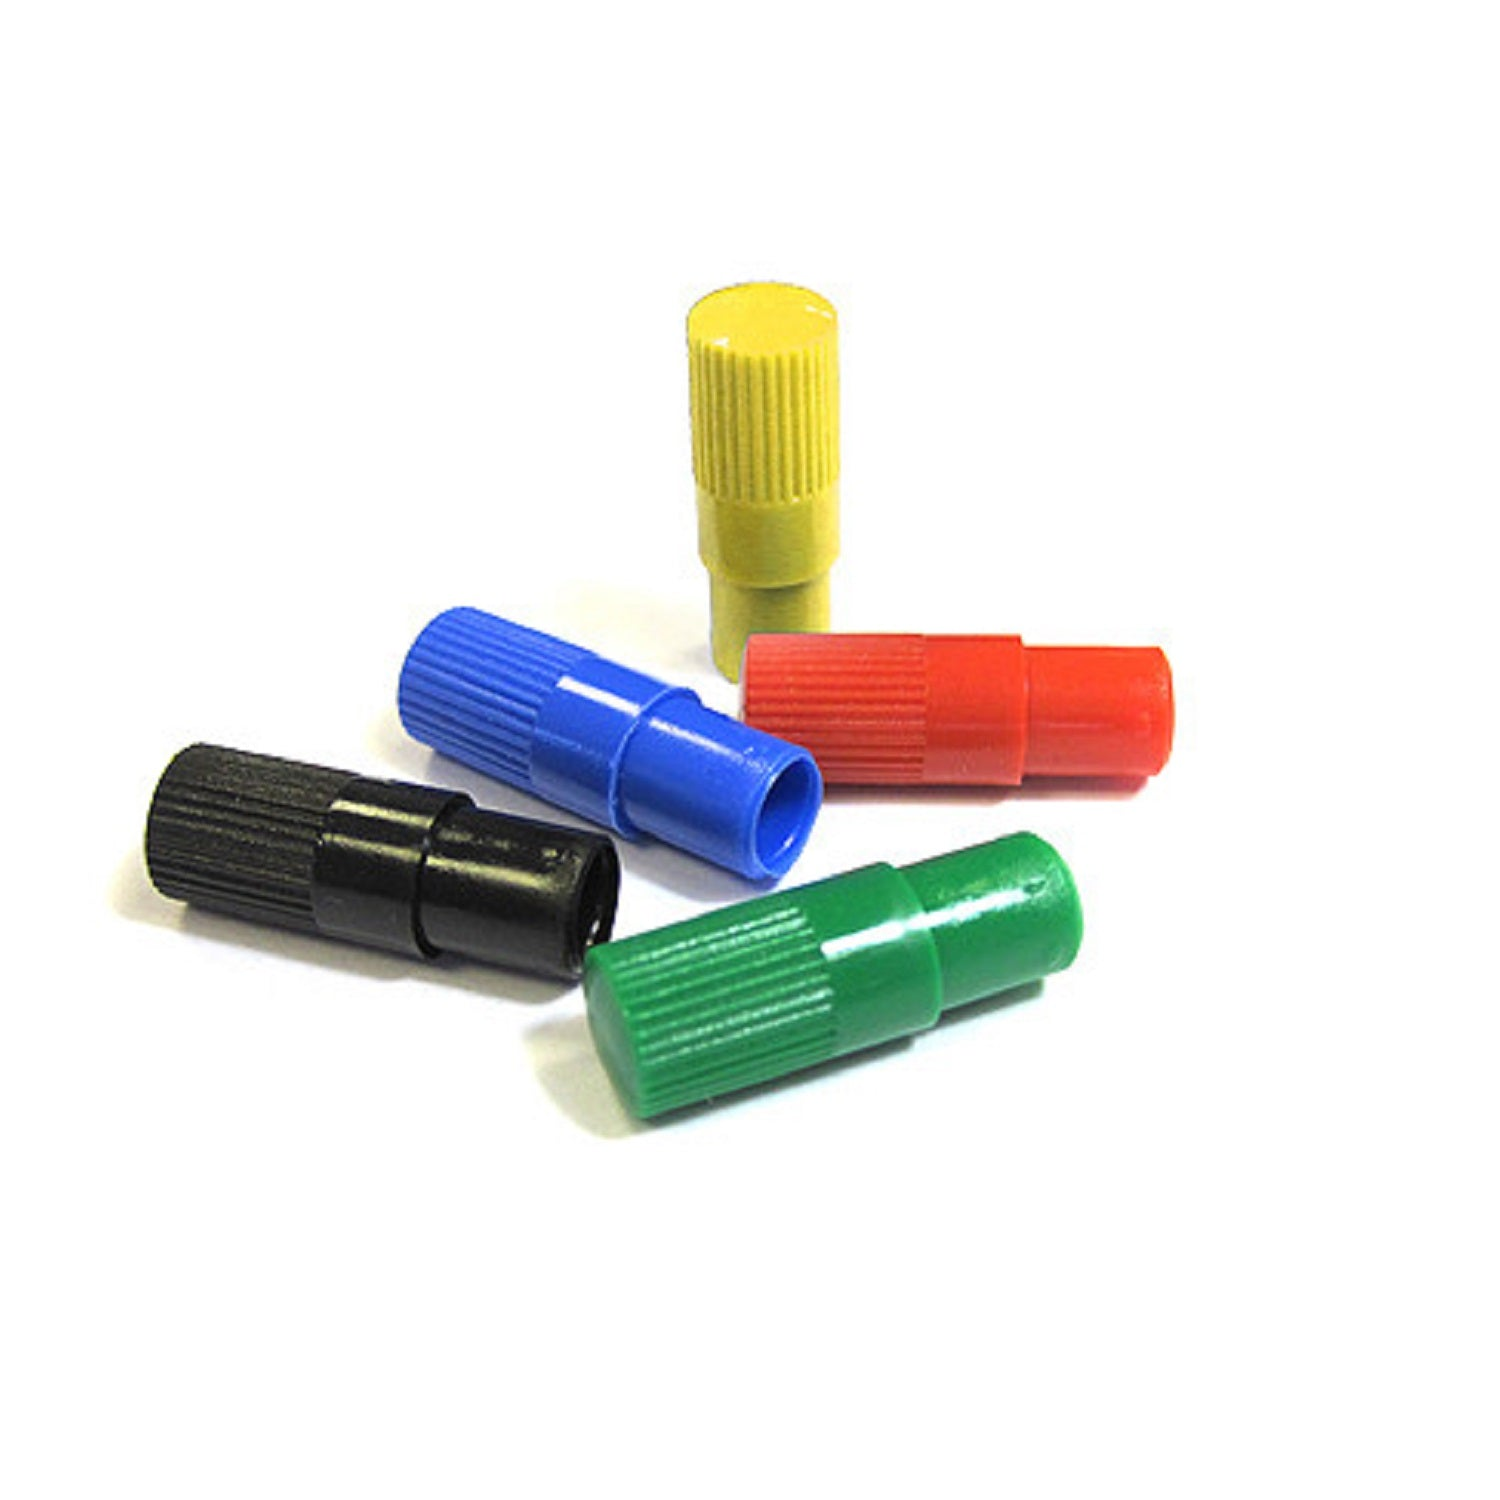 Caran dAche Office Sharpener Button